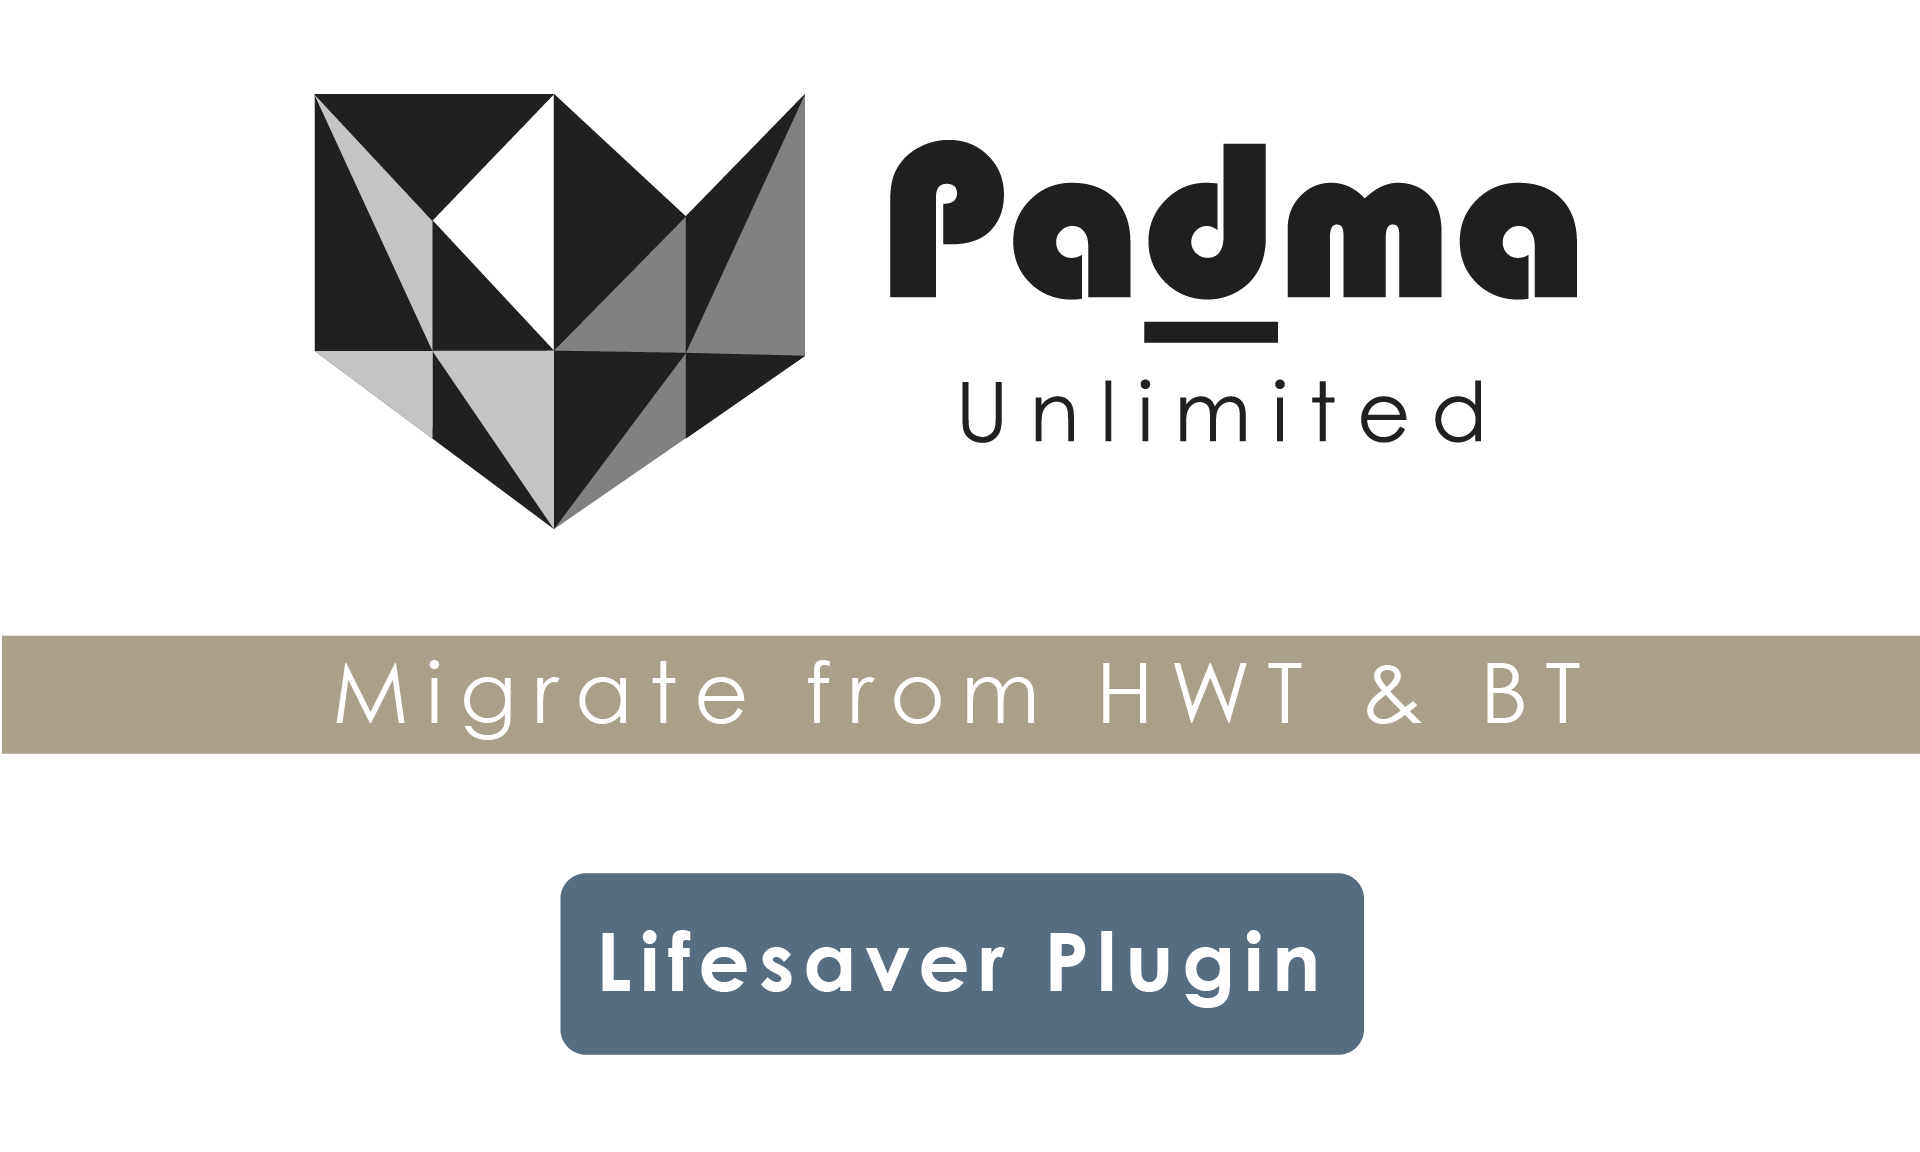 Migration from HeadwayThemes to Padma Unlimited Free WordPress Theme Builder.